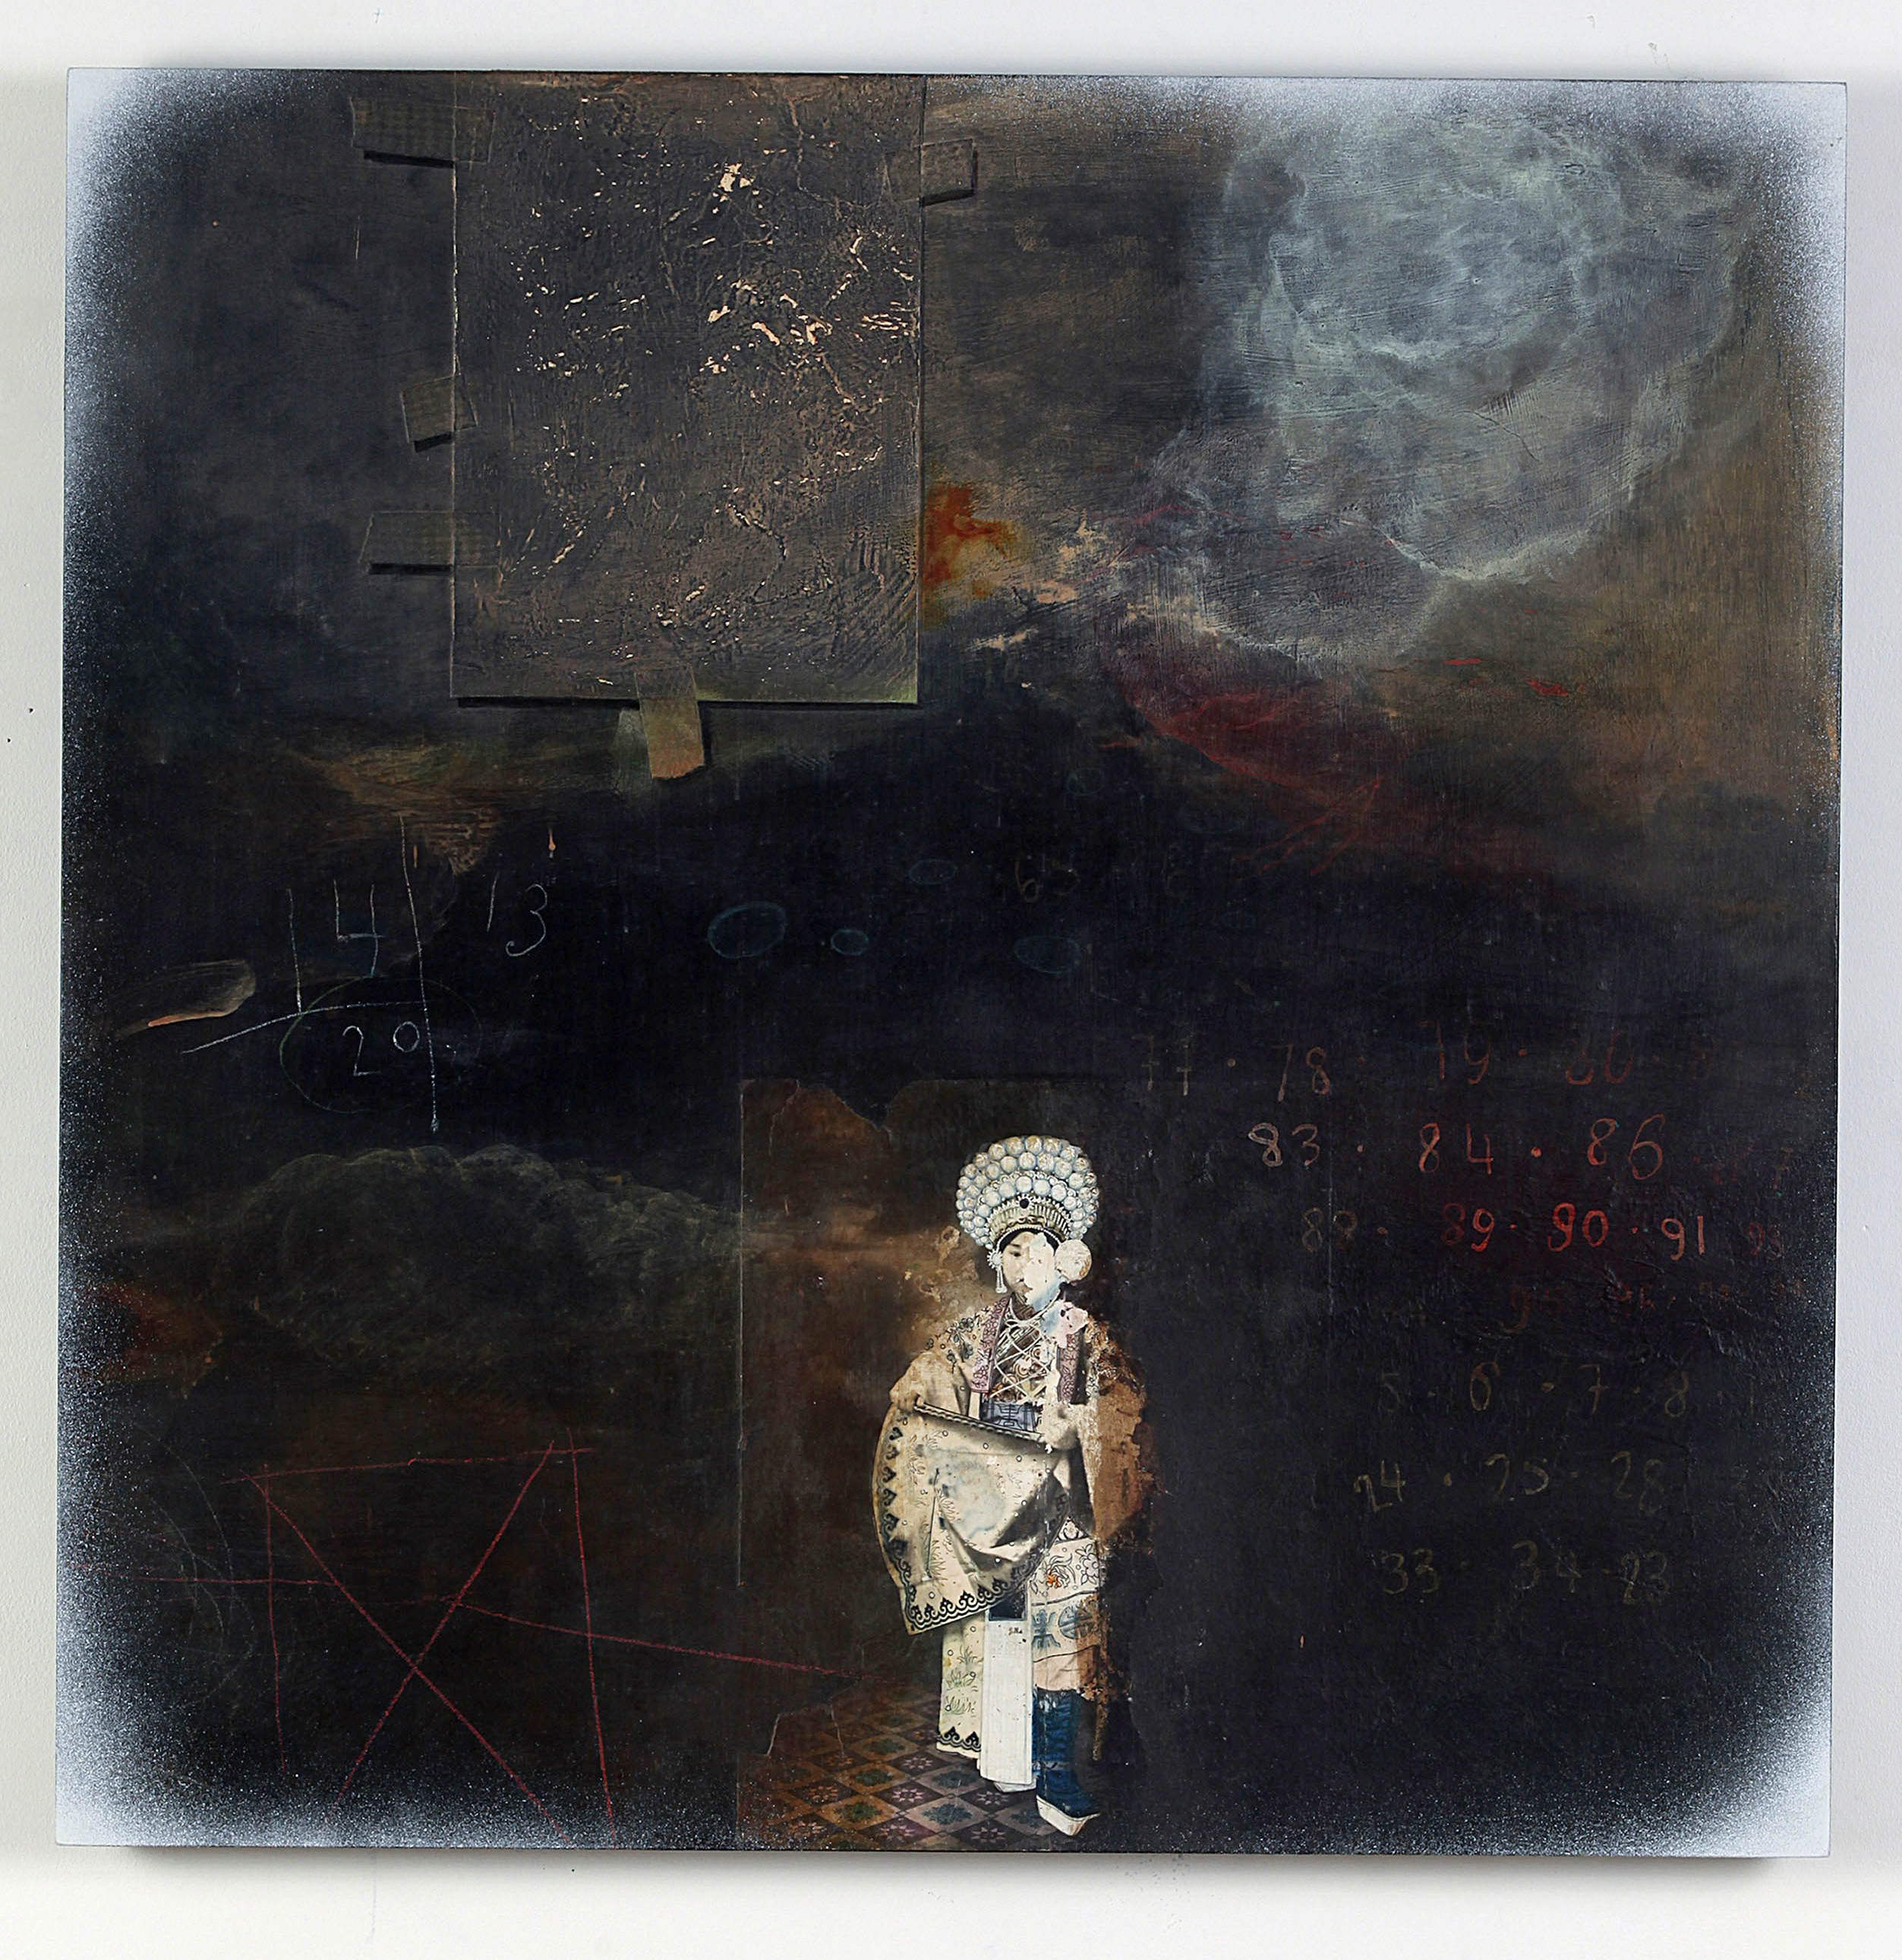 Renée Stout 2013 Acrylic paint and collaged vintage photograph on wood panel 24 x 24 in (60.9 x 60.9 cm) 2021 Marc Straus Gallery